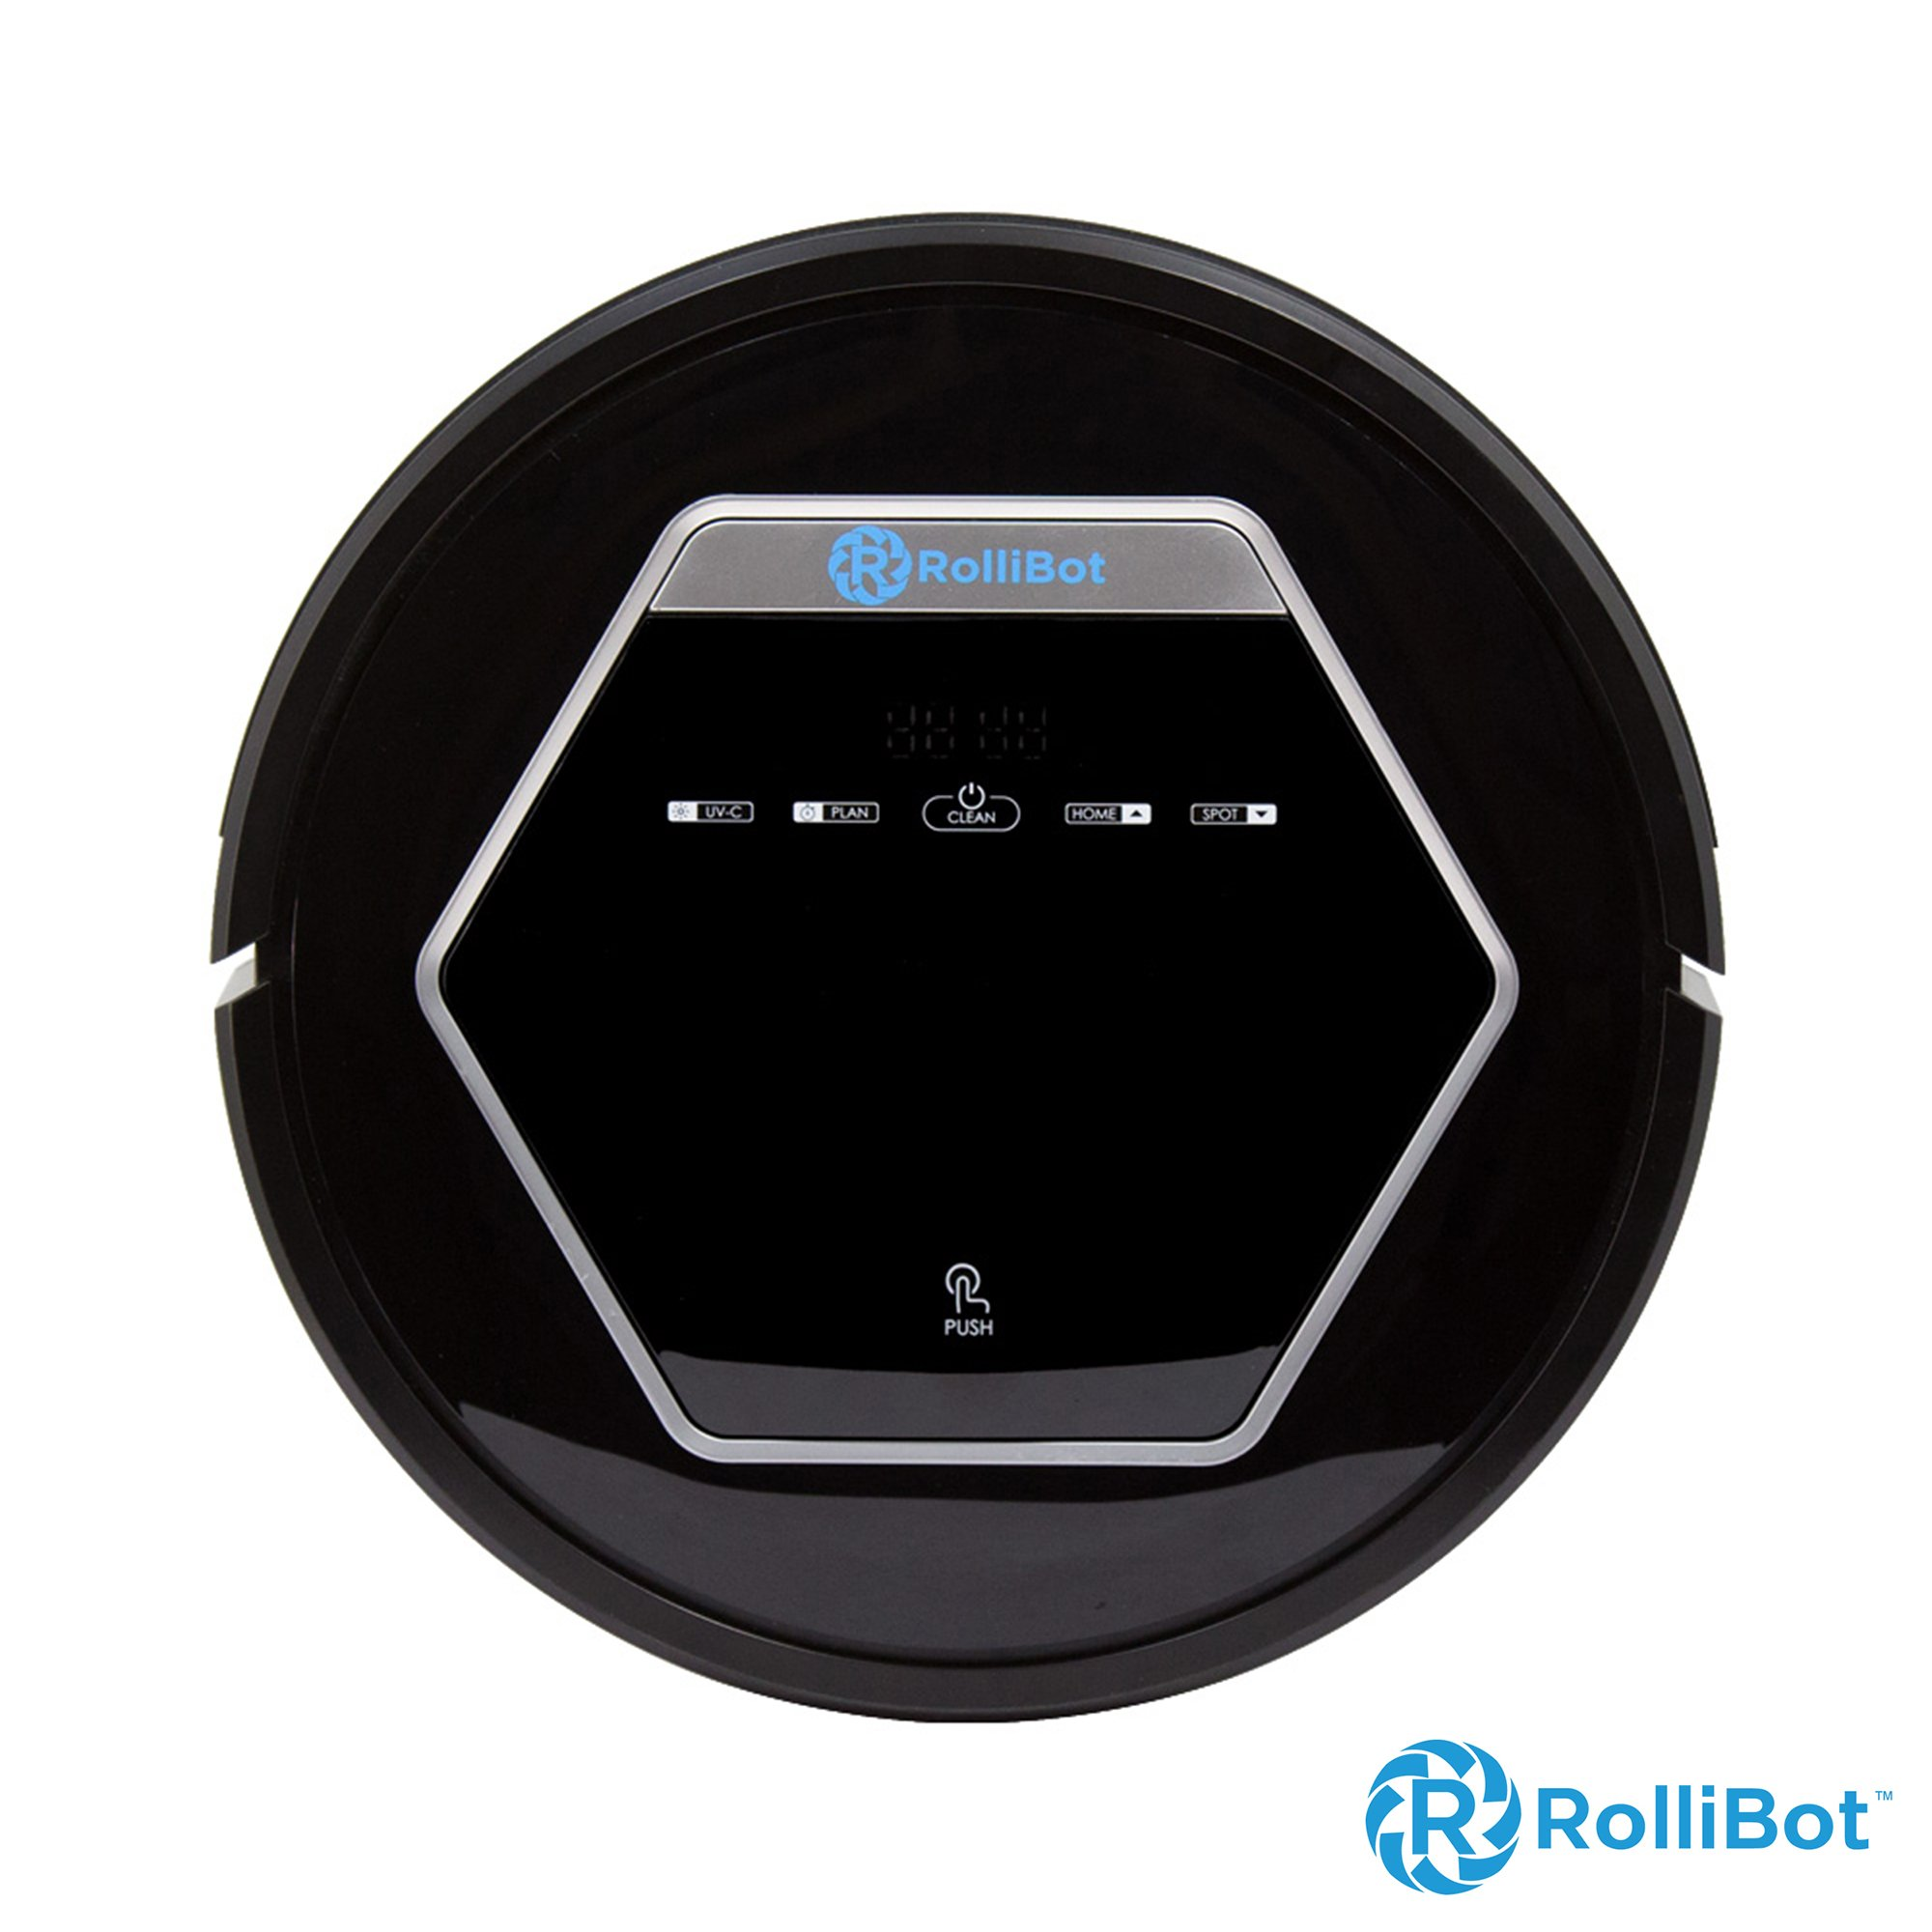 Rollibot BL618- Quiet Robotic Vacuum Cleaner. Vacuum's, Sweeps, Mops with UV Light Sterilization for Hardwood, Tile, and Linoleum - Black (Certified Refurbished) by Rollibot